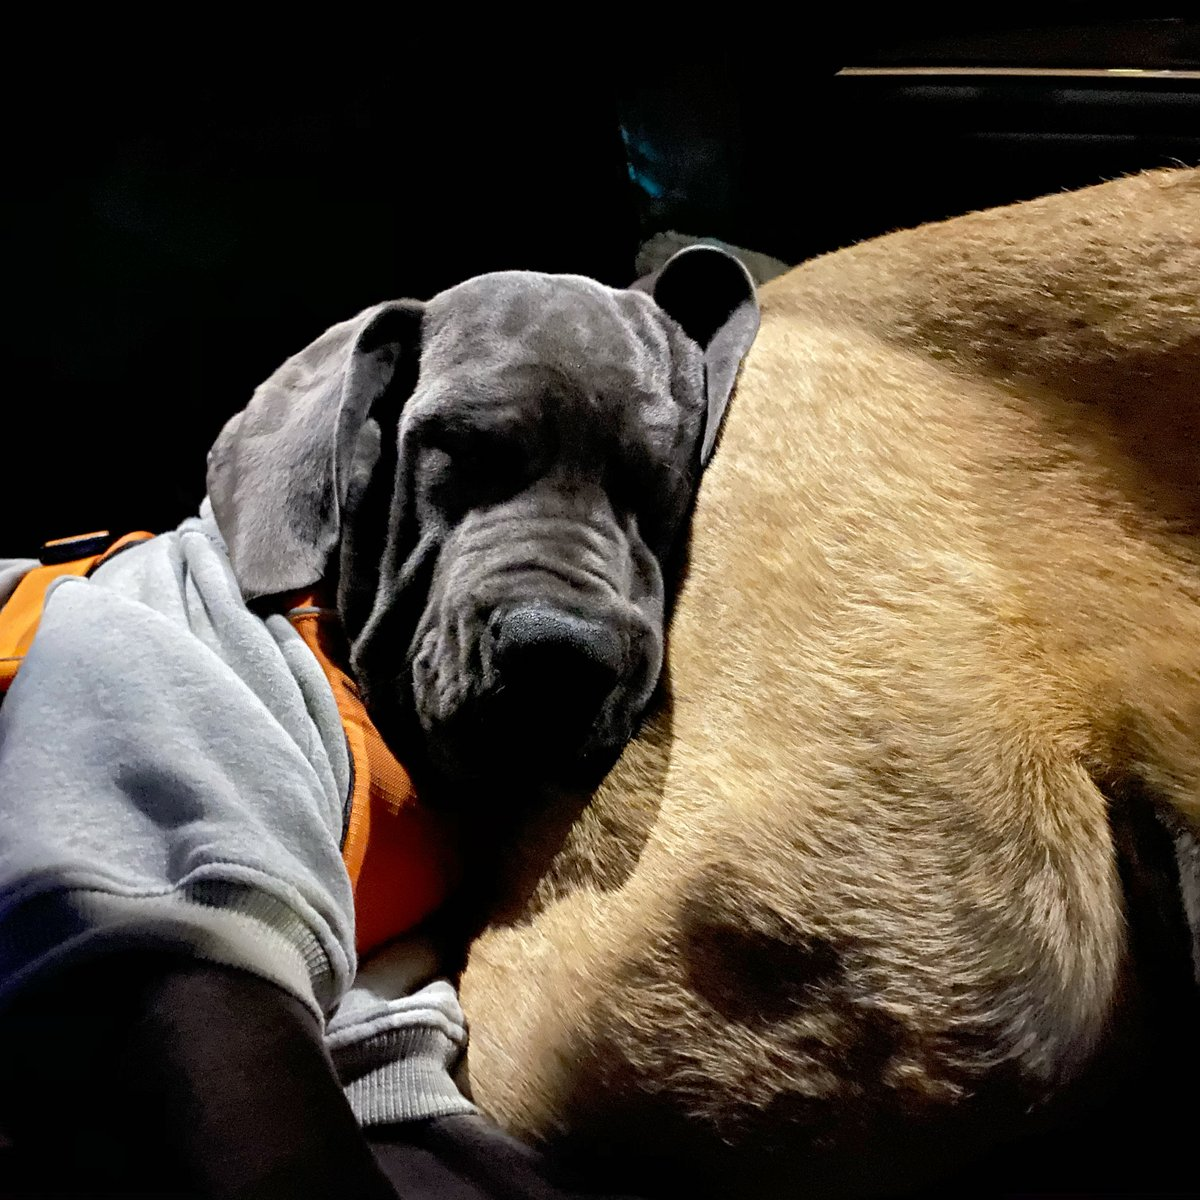 I love you Olive #sisters #puppylife #puppymoments #greatdane #mastiff #greatdanepuppy #greatdanemoments #greatdanelove #mastifflove #mastiffgram pic.twitter.com/kqz7cgsMtJ